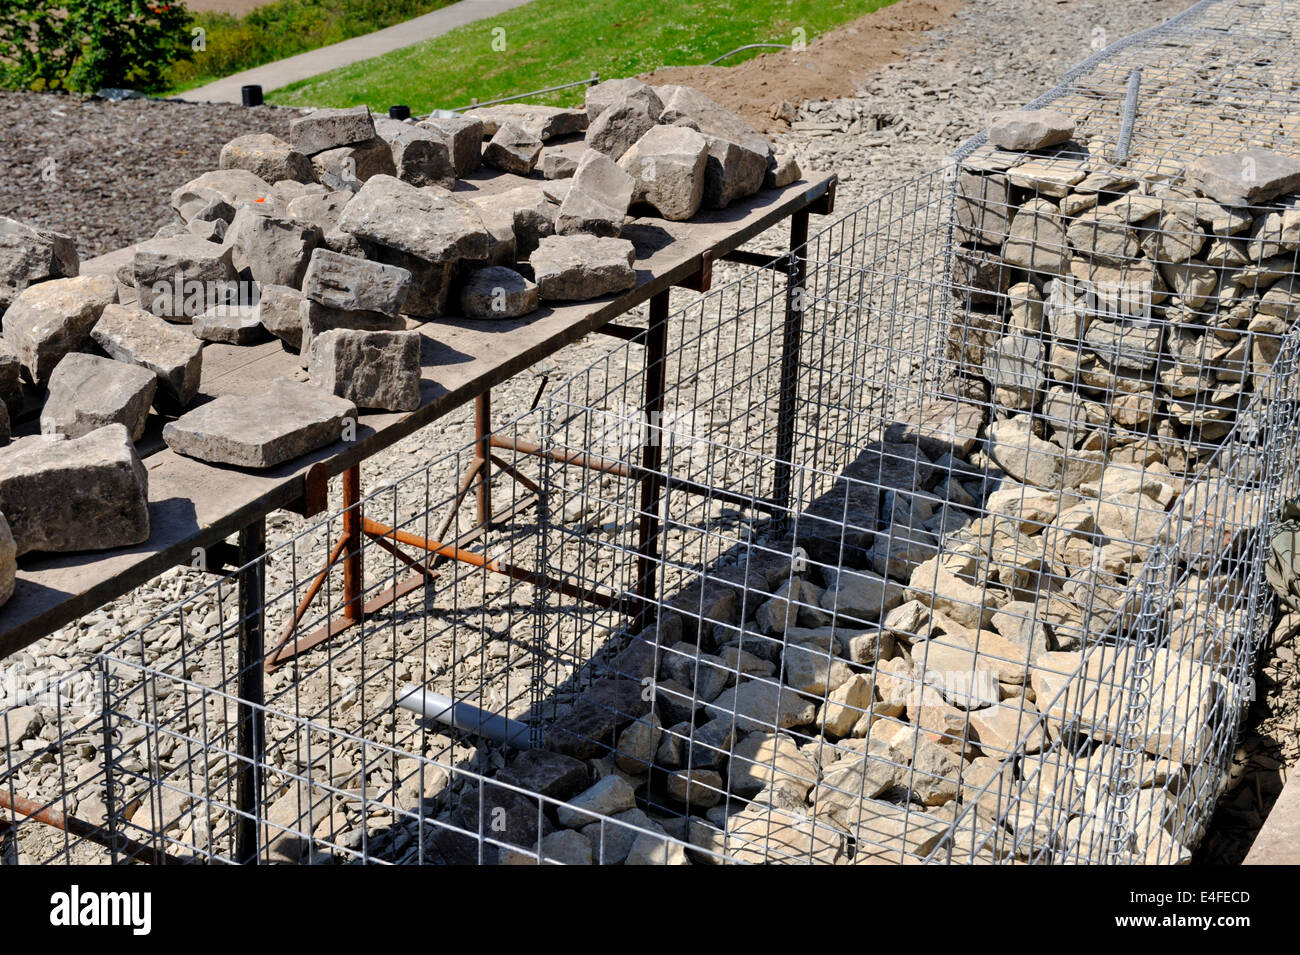 Filling detail of galvanized wire mesh babion being filled with rock for slope stabilization,  Aberporth, Wales, - Stock Image